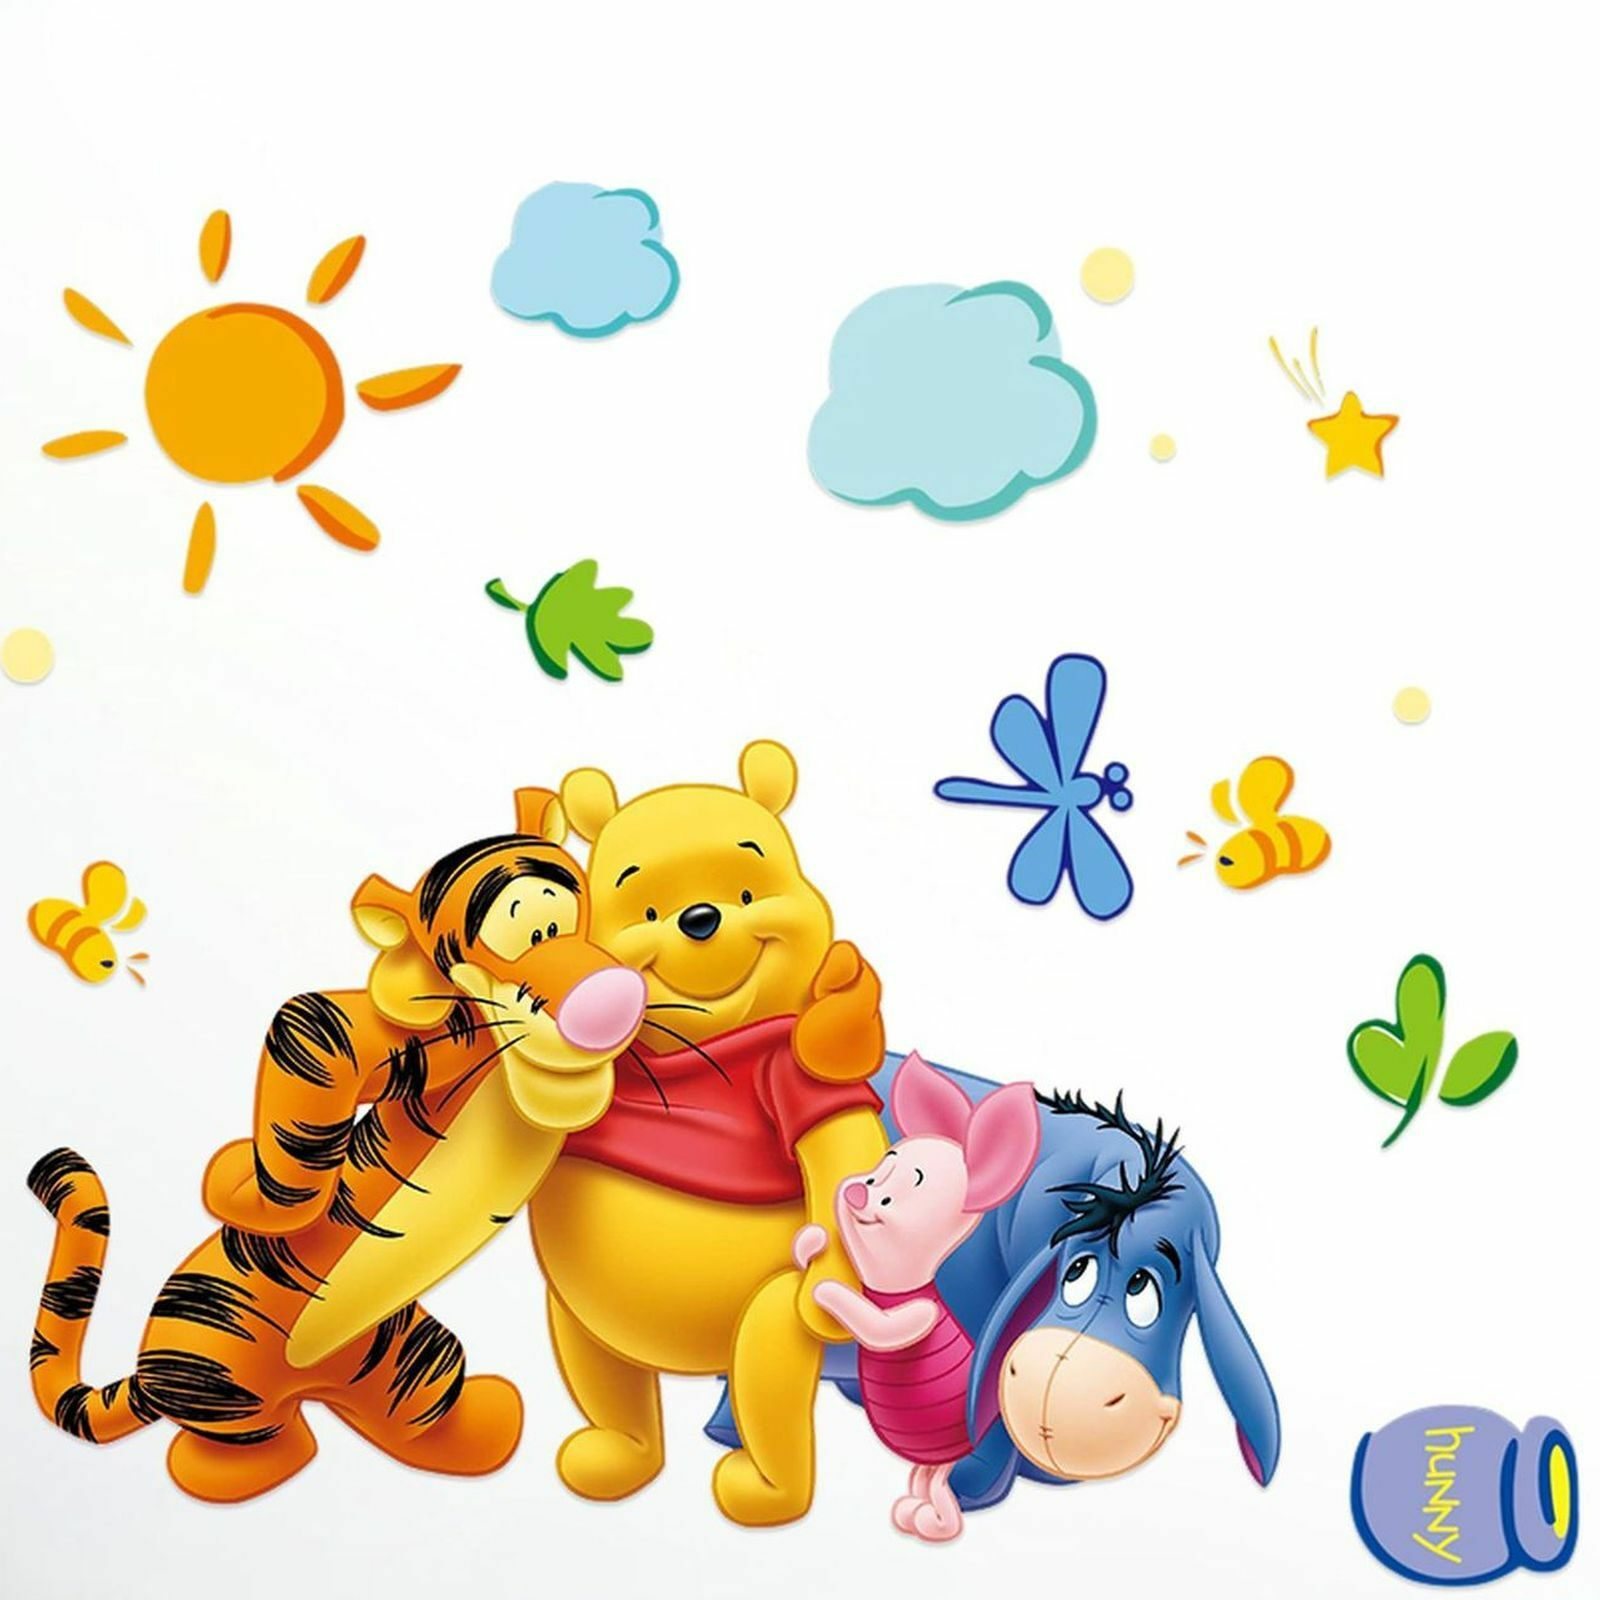 winnie puuh wandtattoo wandsticker winnie the pooh tigger wandaufkleber kinder eur 8 99. Black Bedroom Furniture Sets. Home Design Ideas